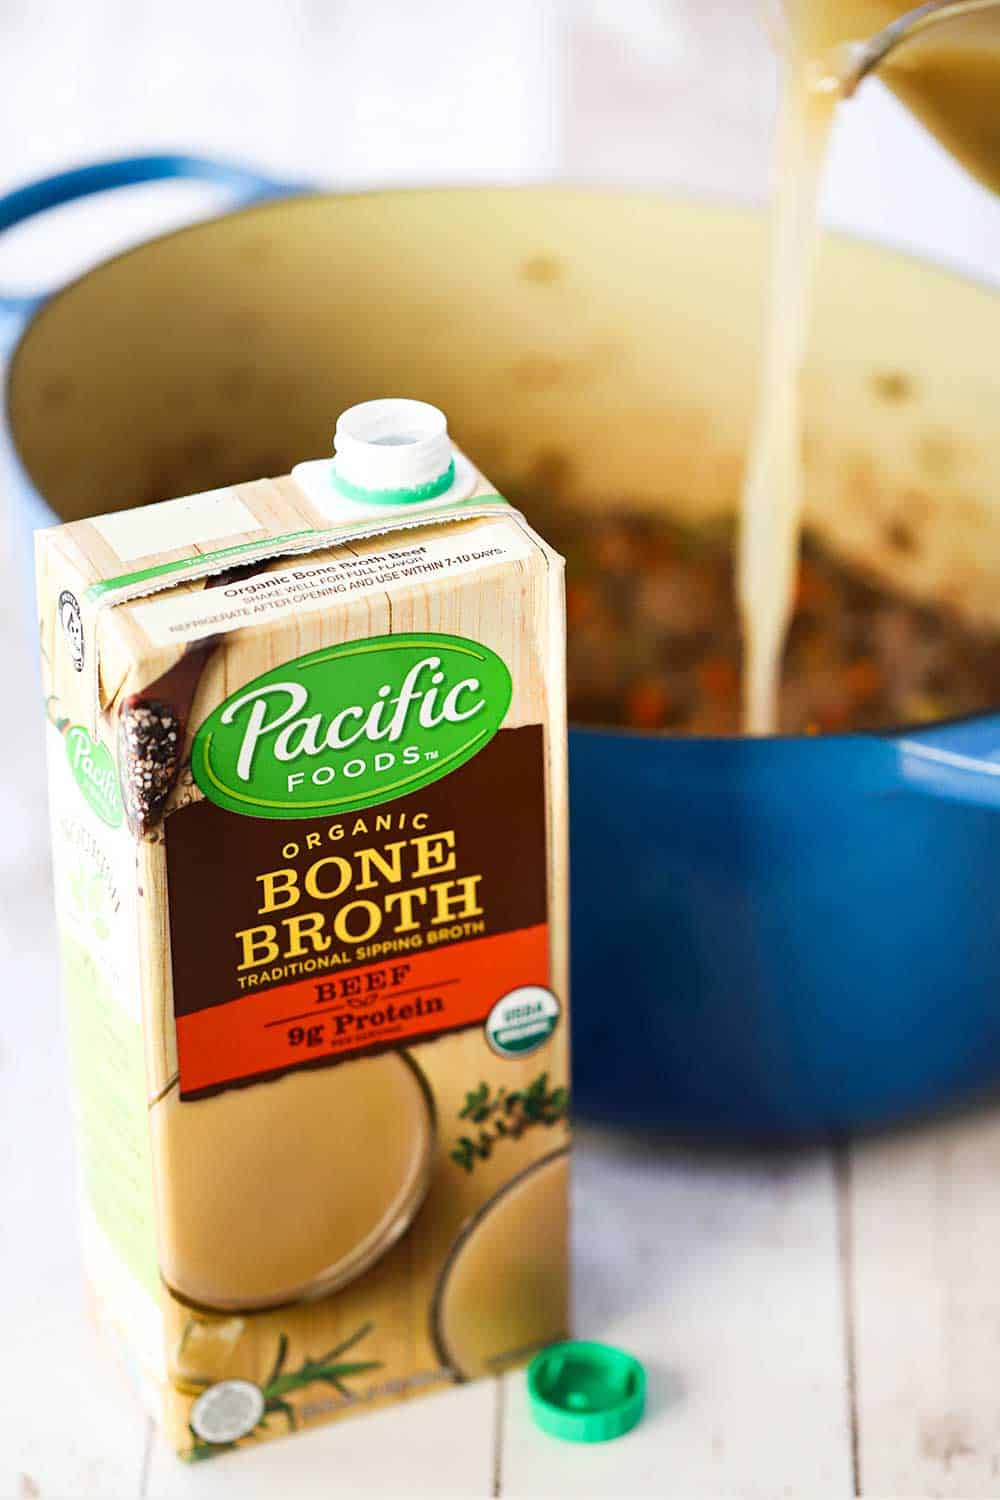 A box of Pacific Food bone broth sitting in front of a blue Dutch oven with a measuring cup pouring the broth into the pot.